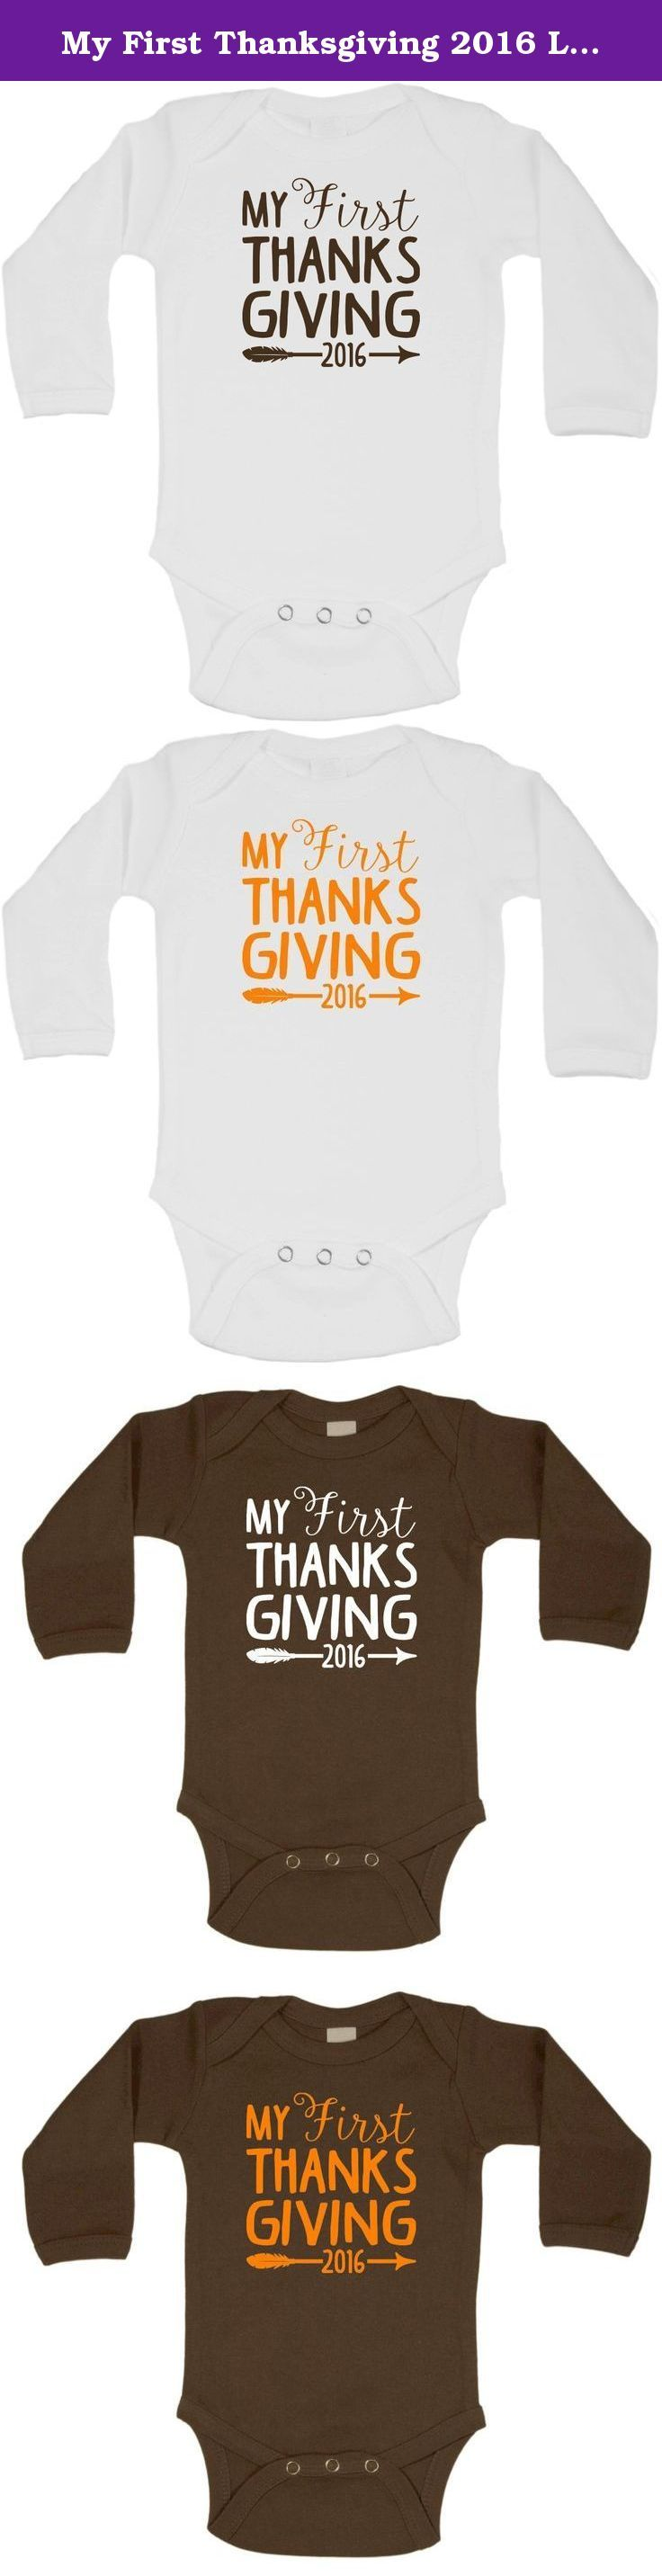 My First Thanksgiving 2016 Long Sleeve Onesie Creeper Bodysuit NB-18M. Rabbit Skins Onesies adorned with custom made vinyl decals. Professionally applied for years of enjoyment!.